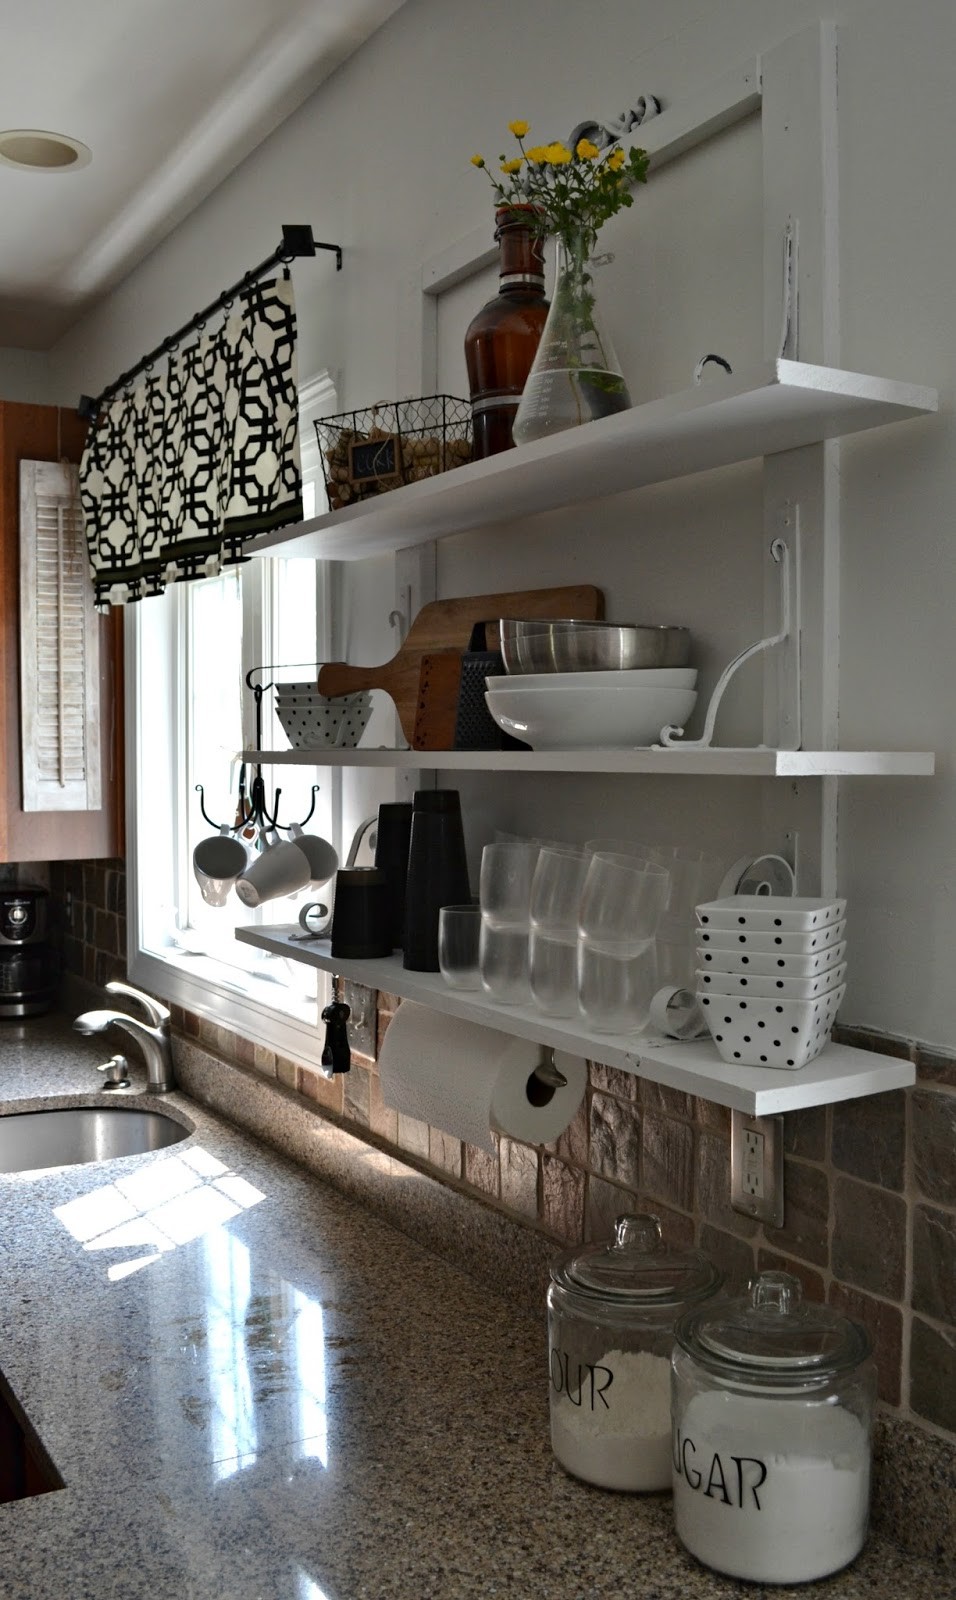 down to earth style open kitchen shelves. Black Bedroom Furniture Sets. Home Design Ideas